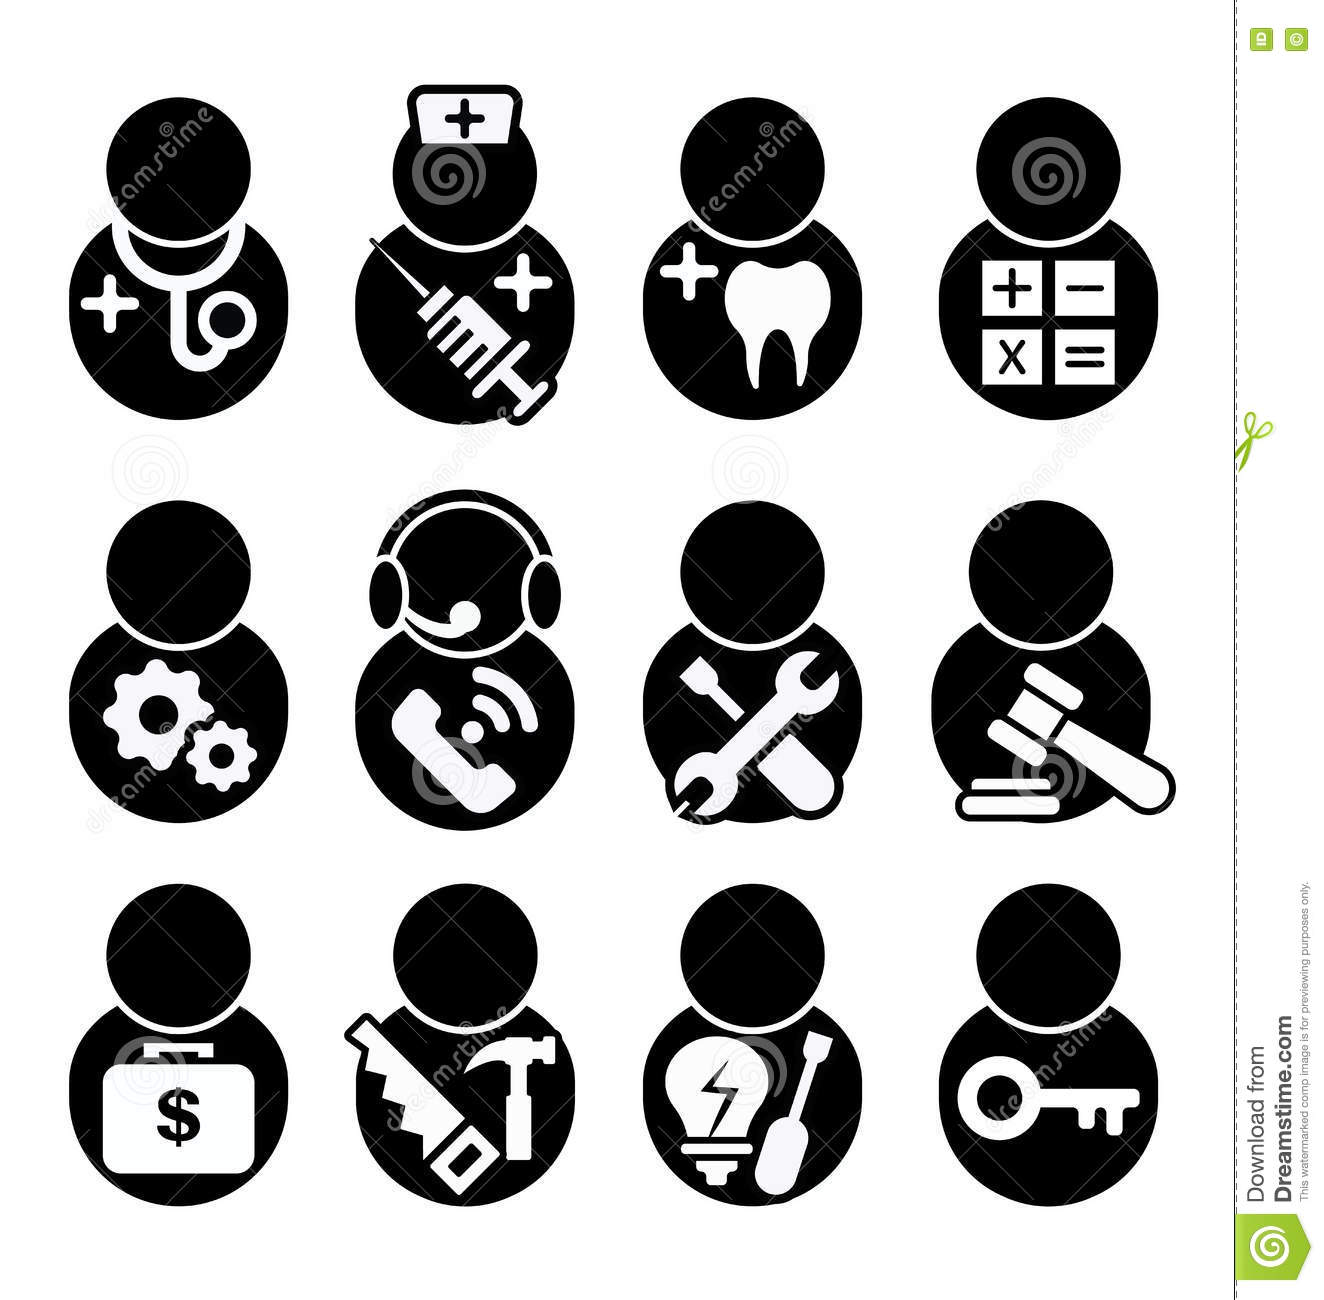 Occupations icon stock vector. Illustration of dentist ...